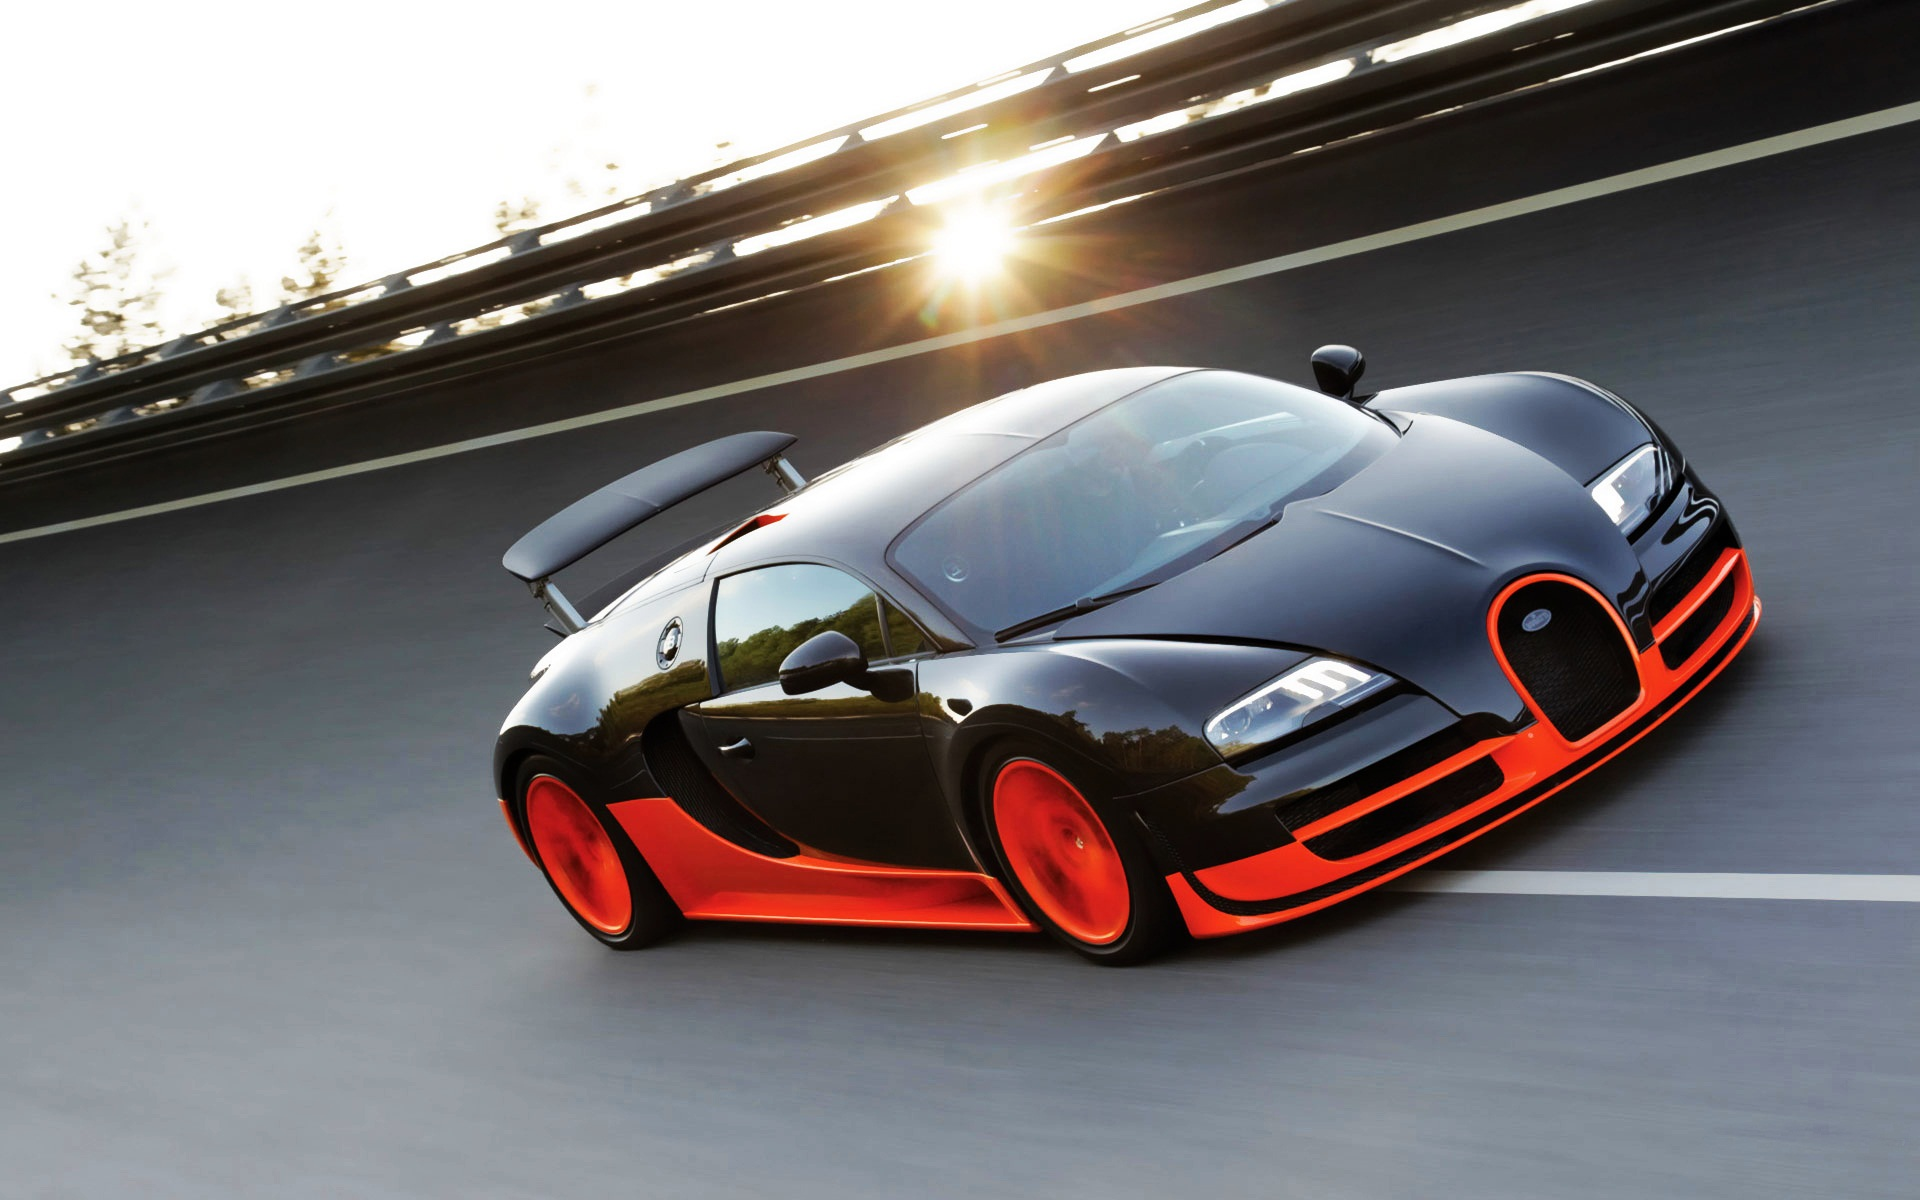 Download Bugatti Veyron Ss 2010 Cars Wallpapers For Your Mobile